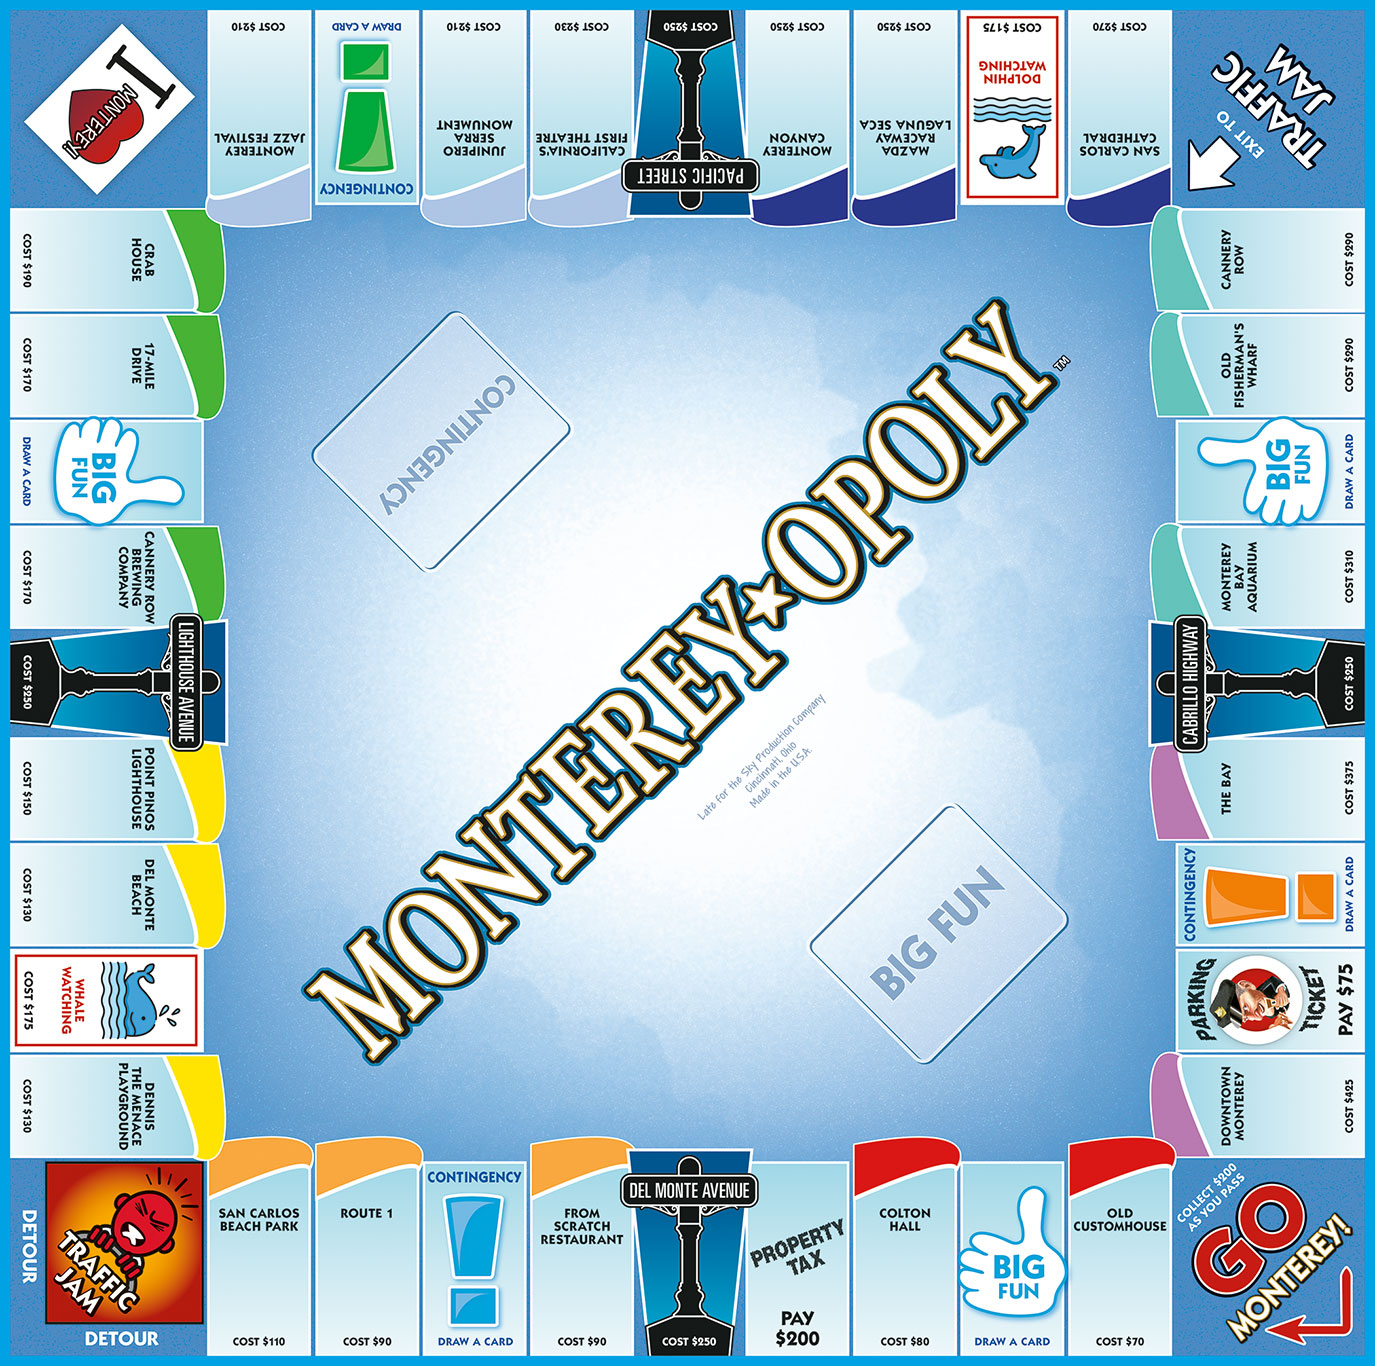 MONTEREY-OPOLY Board Game